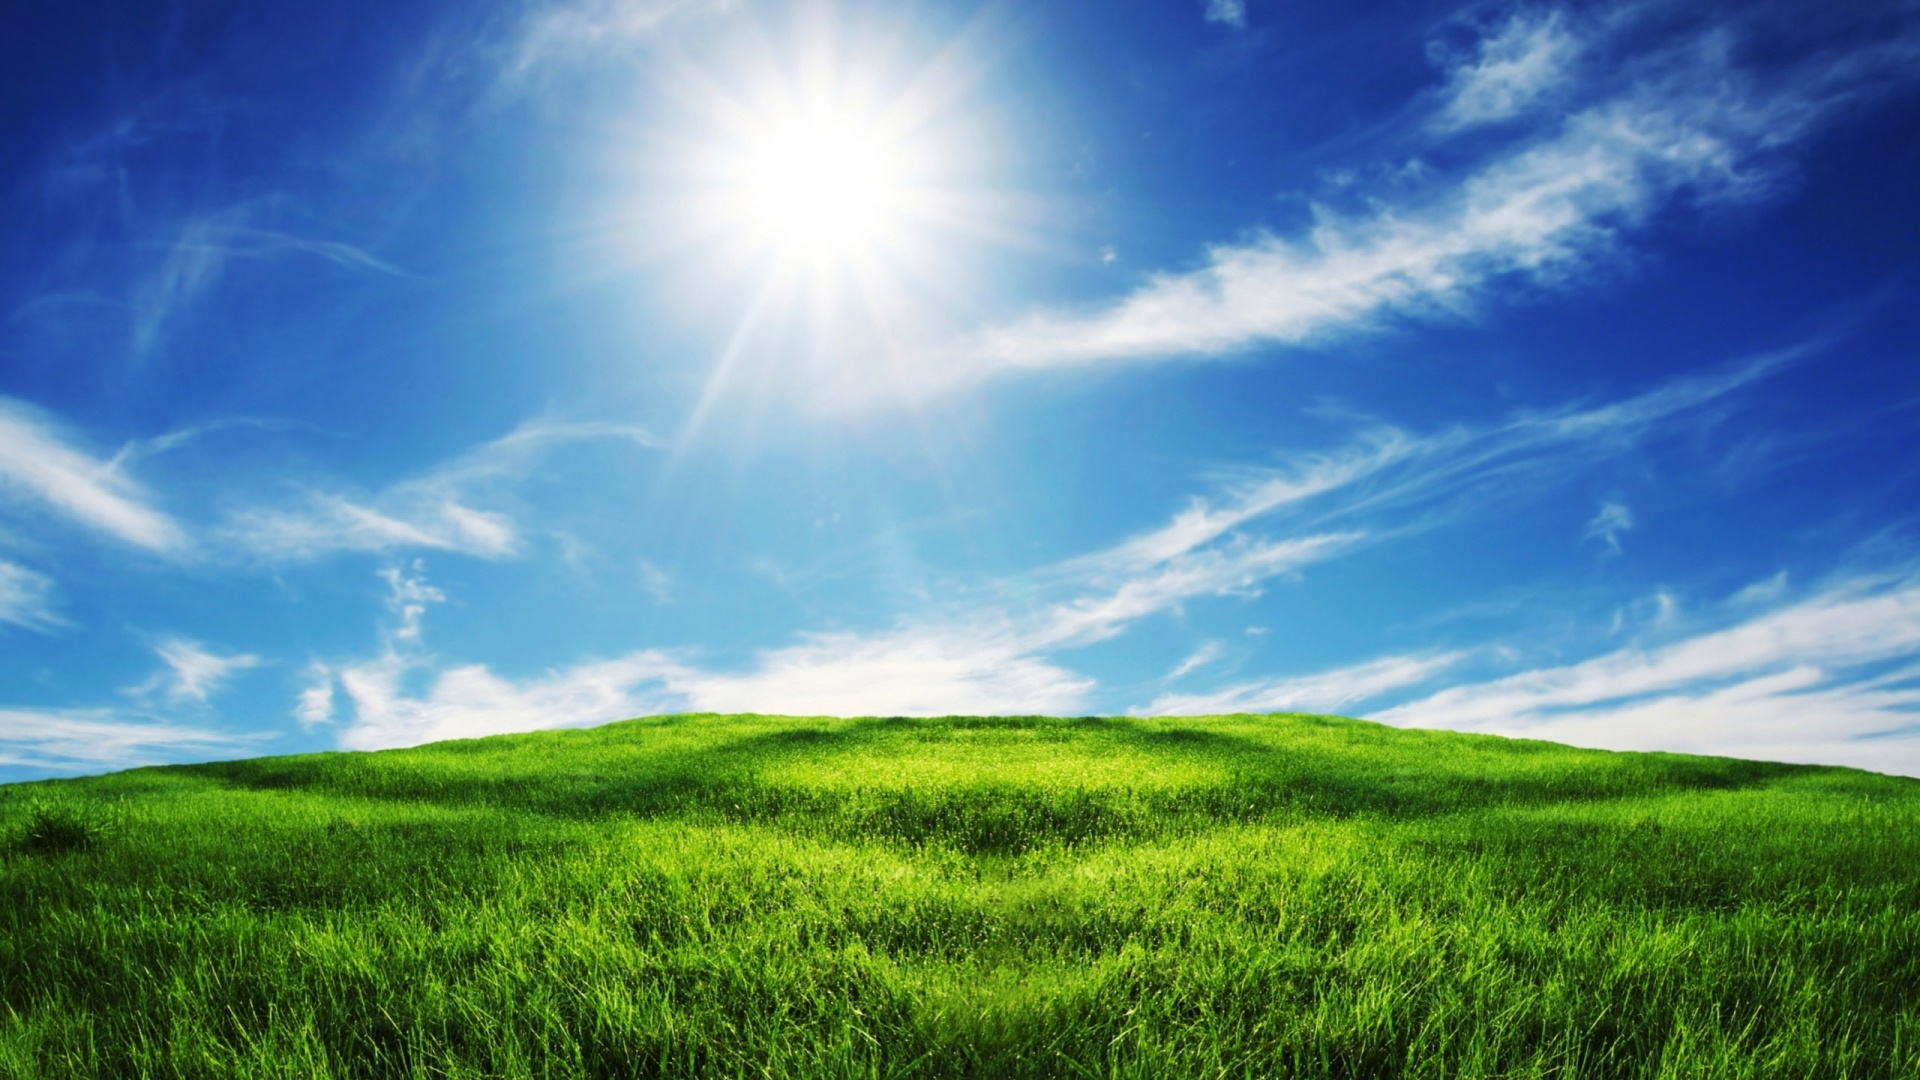 Sunny Day desktop wallpaper hd